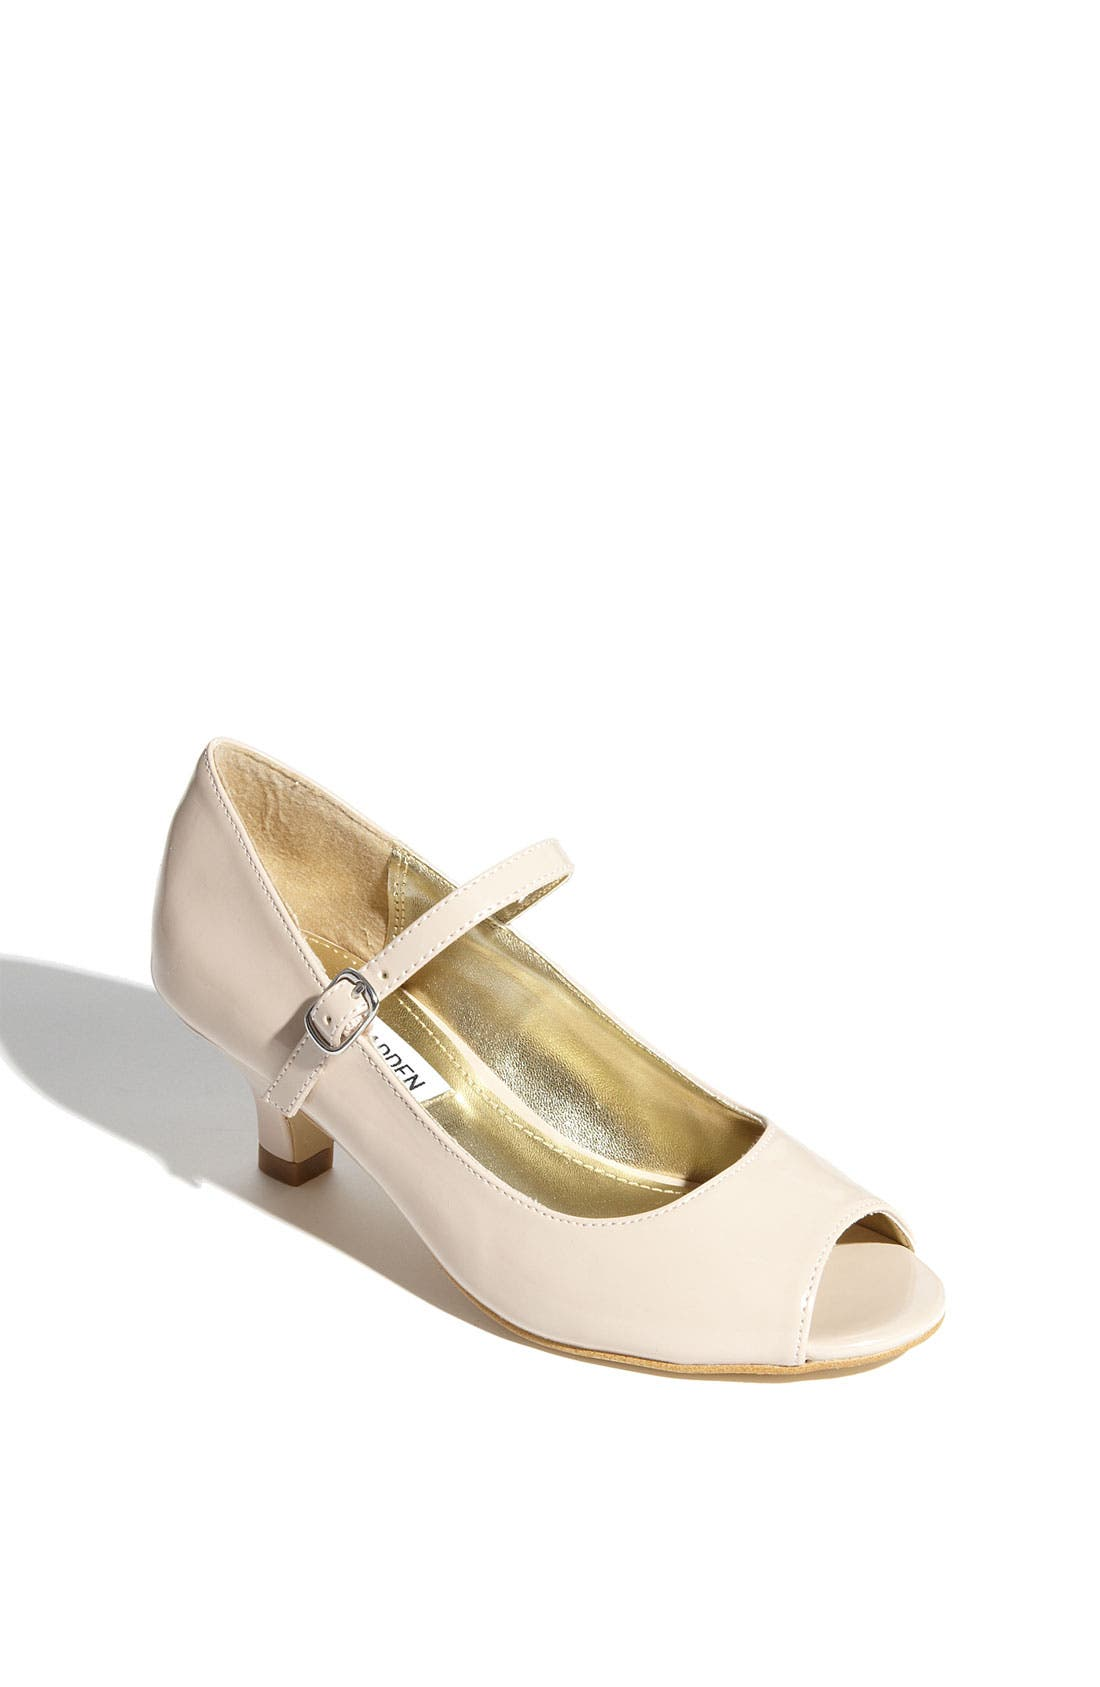 Alternate Image 1 Selected - Steve Madden 'Babyy' Peep Toe Pump (Little Kid & Big Kid)